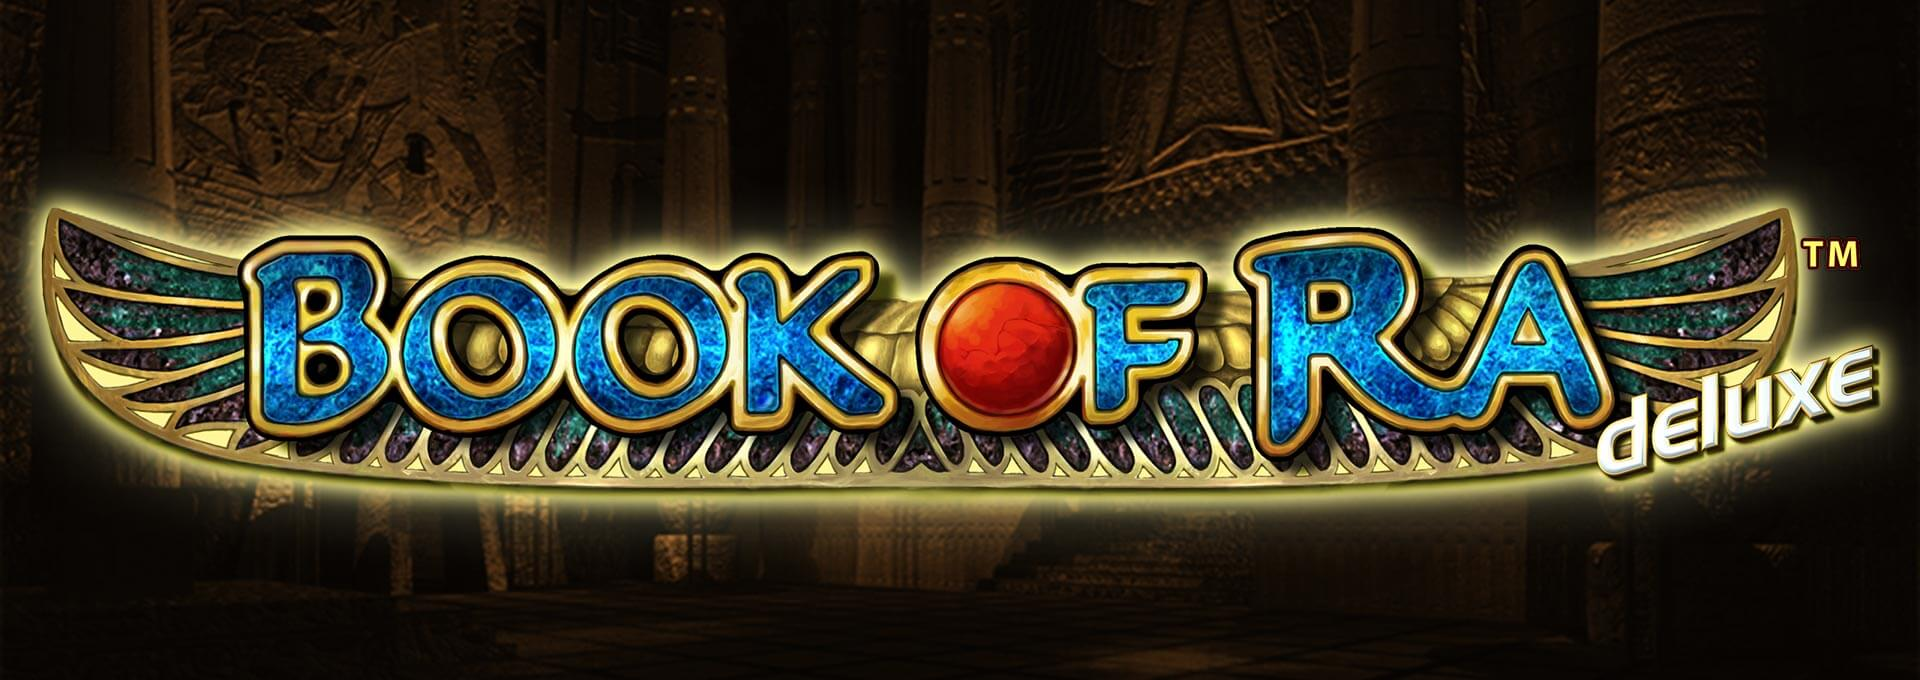 casino online roulette free games book of ra